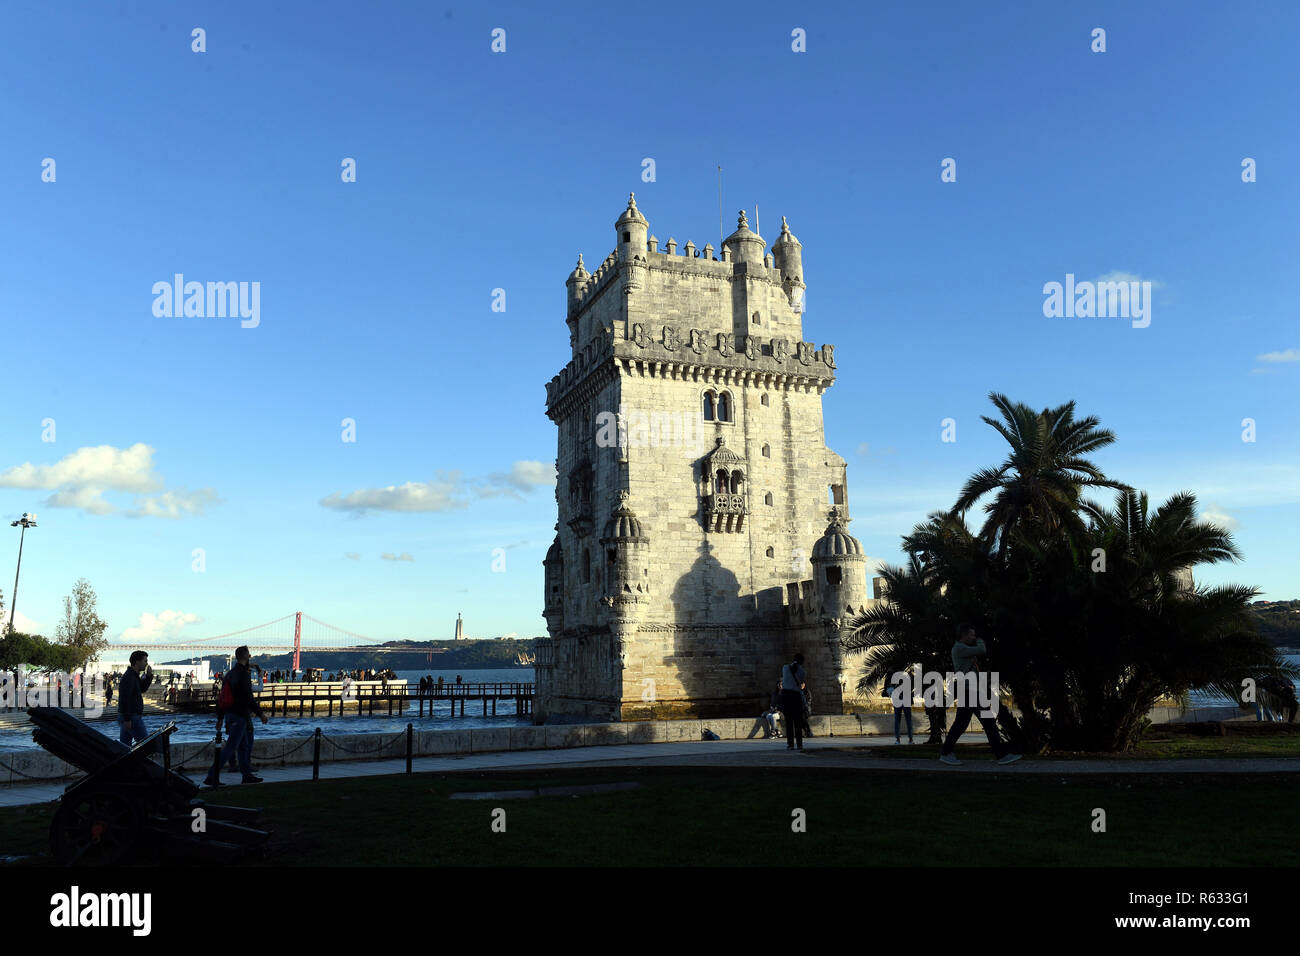 (181203) -- LISBON, Dec. 3, 2018 (Xinhua) -- Photo taken on Nov. 23, 2018 shows the Belem Tower in Lisbon, Portugal. (Xinhua/Zhang Liyun)(mp) - Stock Image